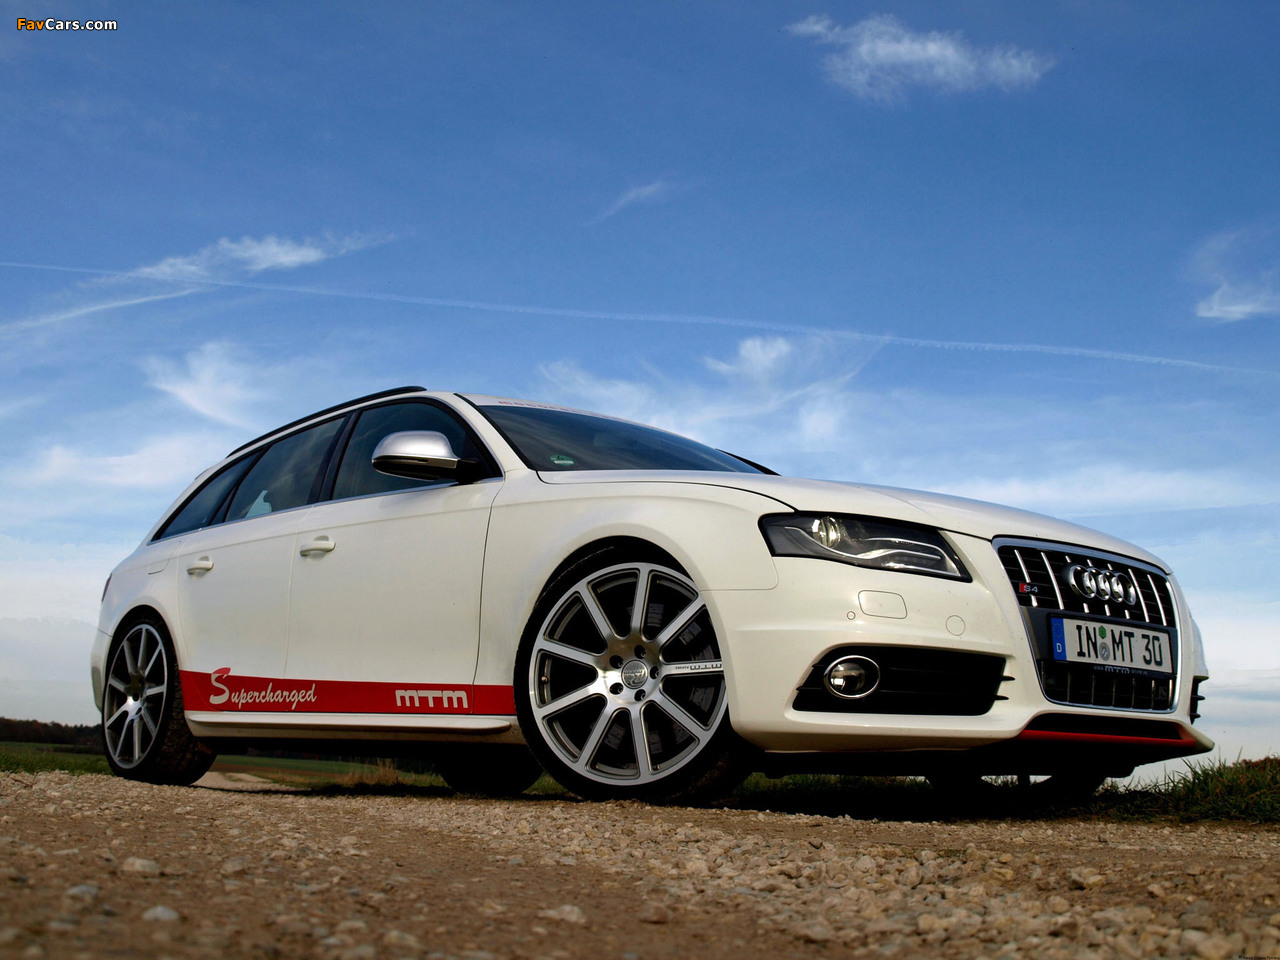 Images Of Mtm Audi S4 Avant B8 8k 2009 1280x960